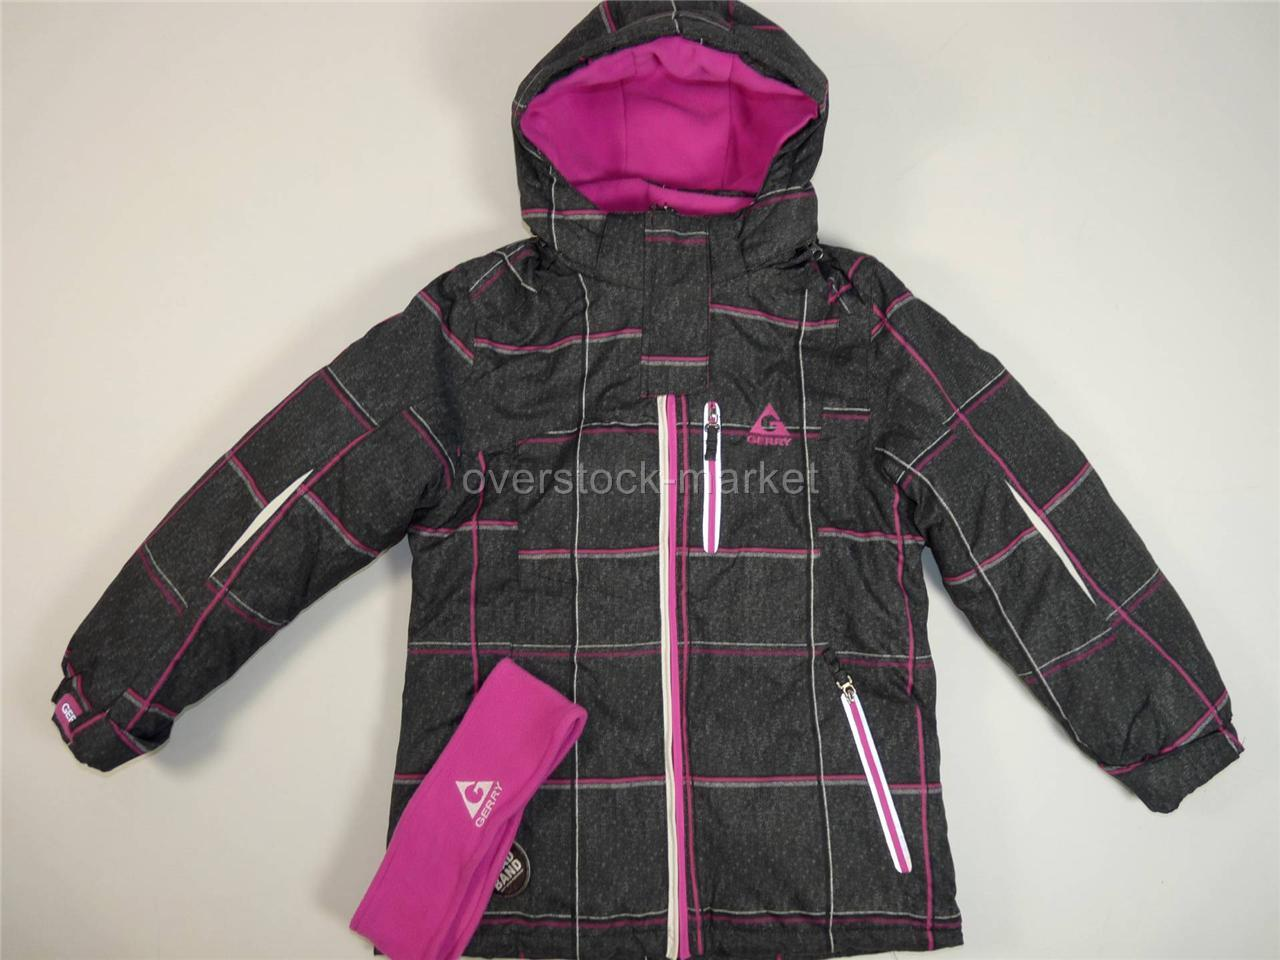 3 in 1 coats for women